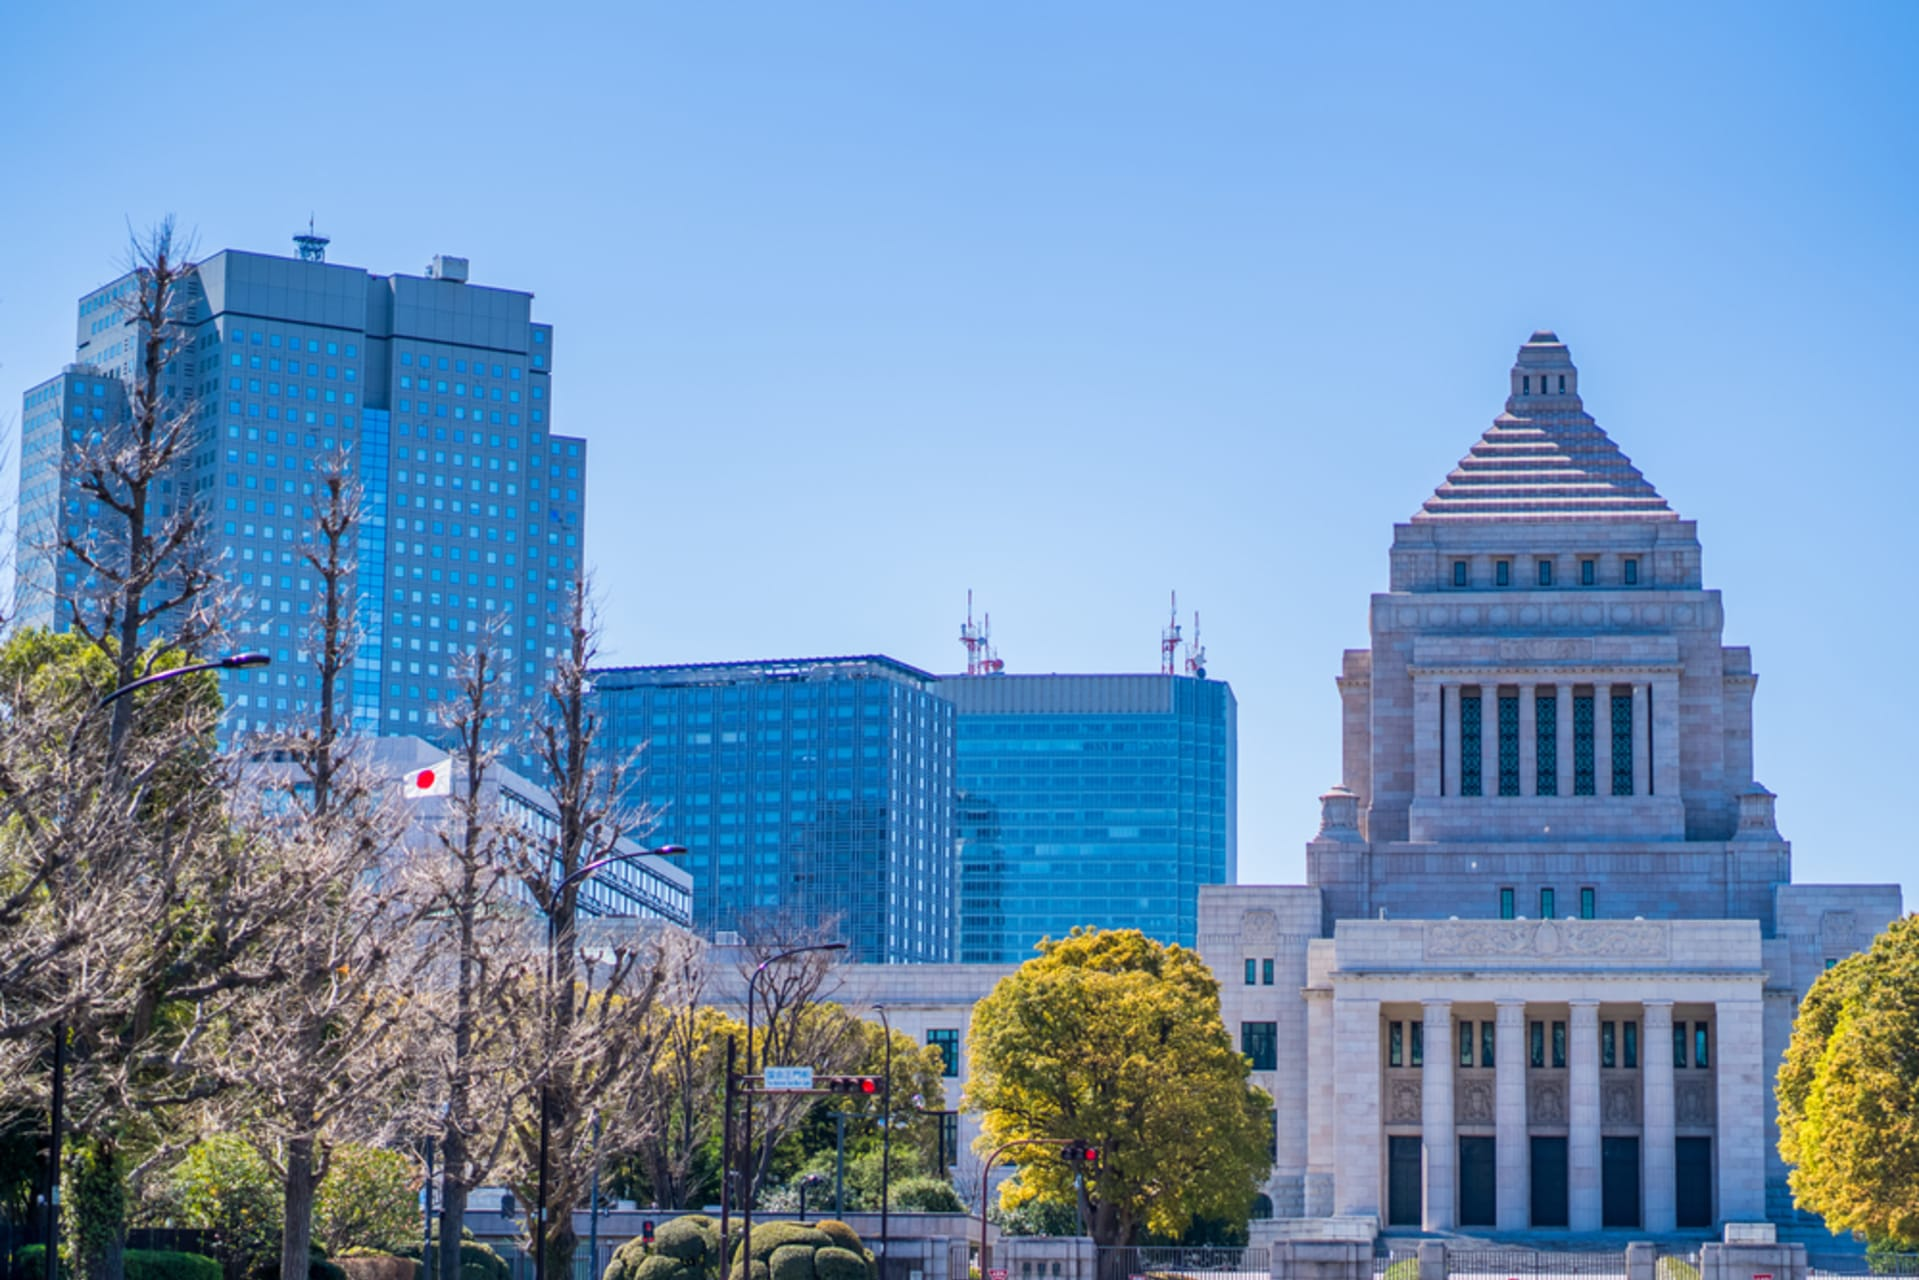 Tokyo - Central Tokyo Walk - Administrative and Business Districts